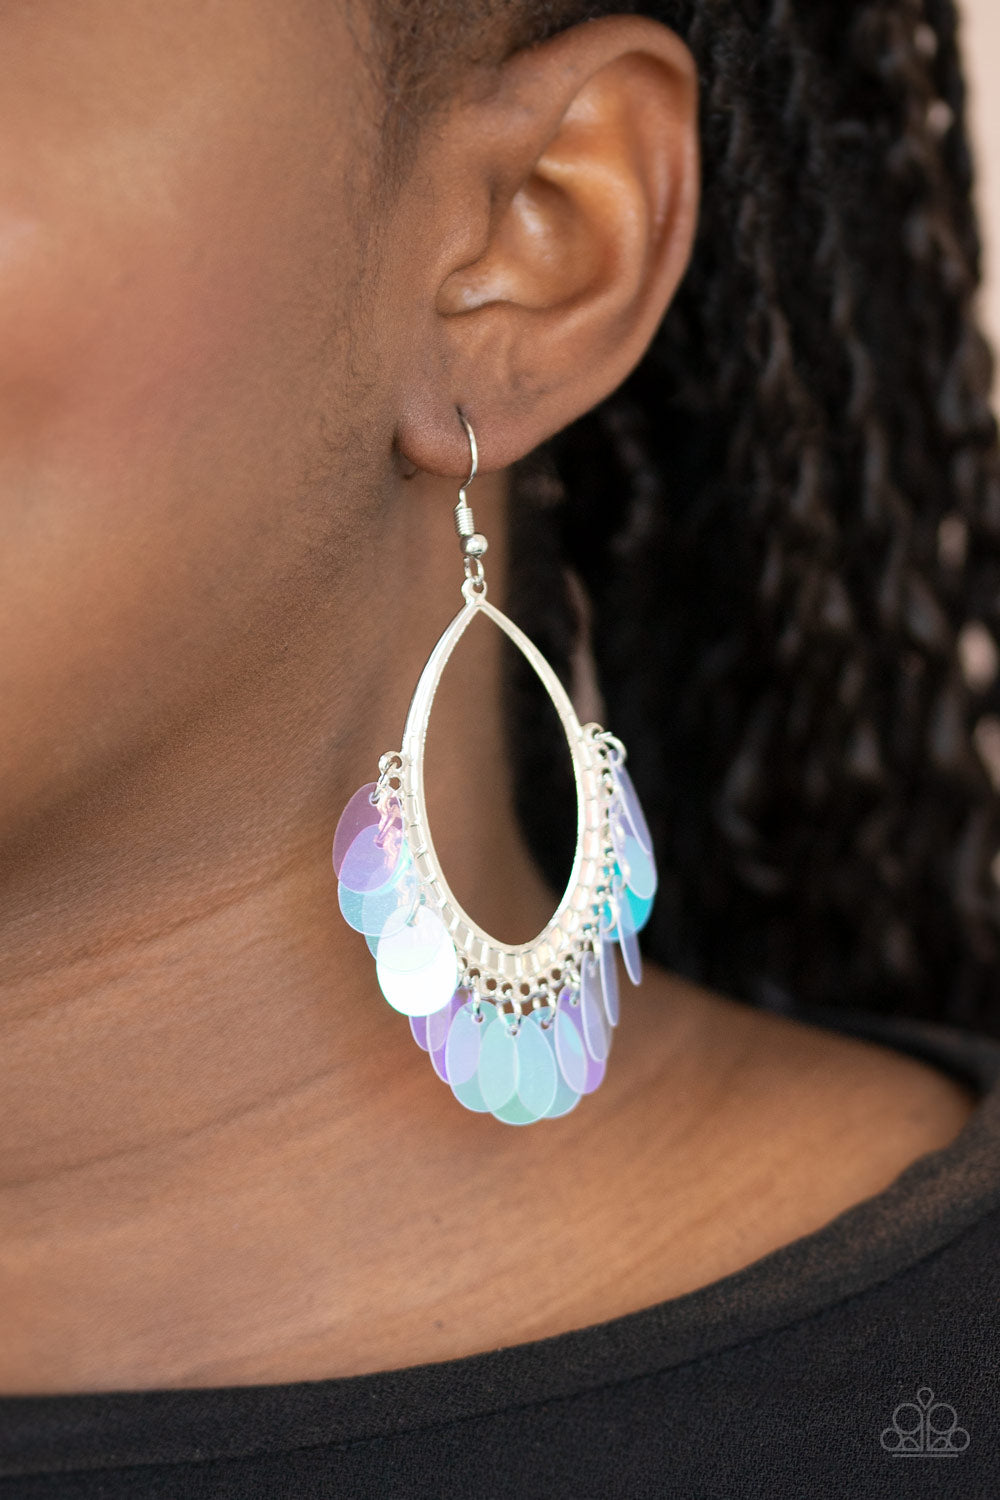 Paparazzi Jewelry & Accessories - Mermaid Magic - Multi Earrings. Bling By Titia Boutique